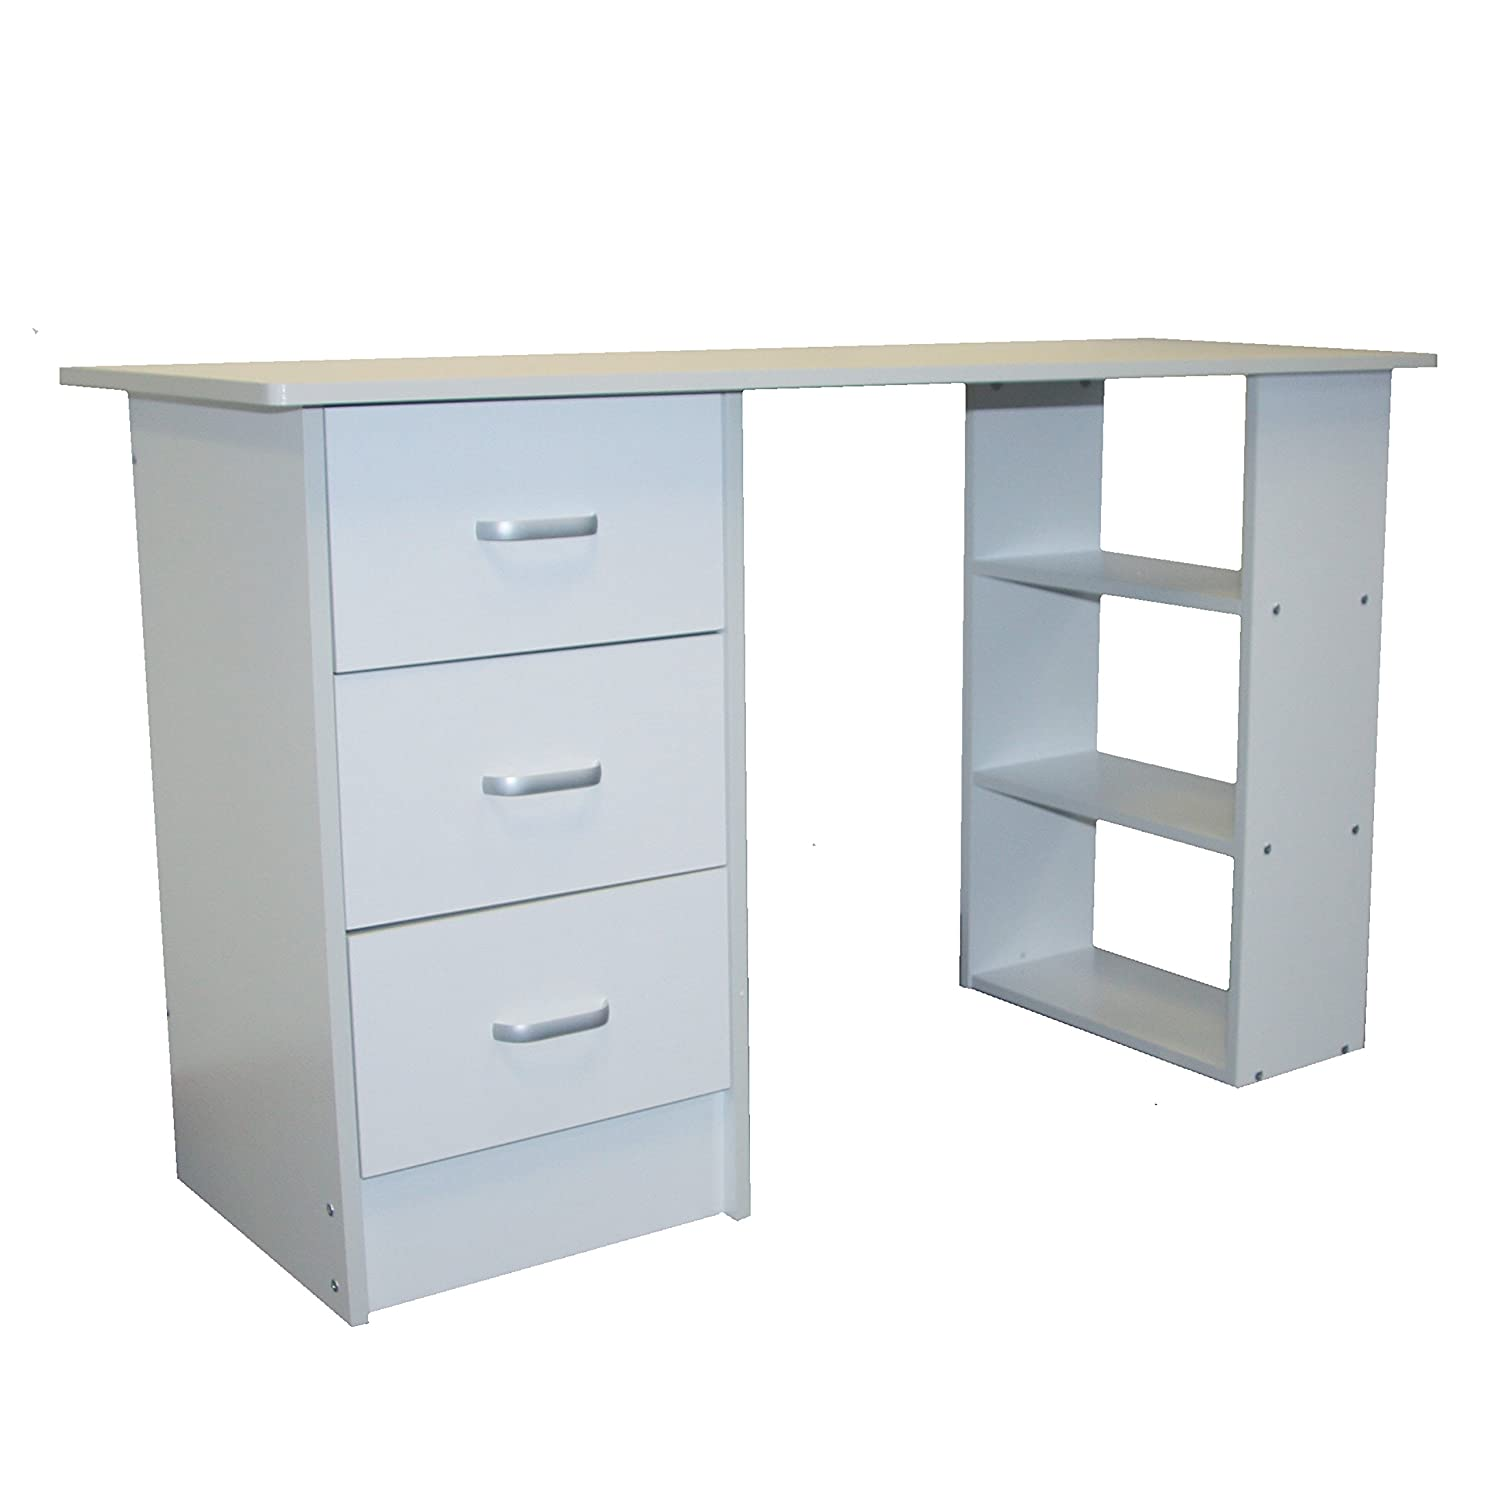 art cm prevent grey alex desk stops desks en computer the ikea ie from drawers out products pulled being too far drawer